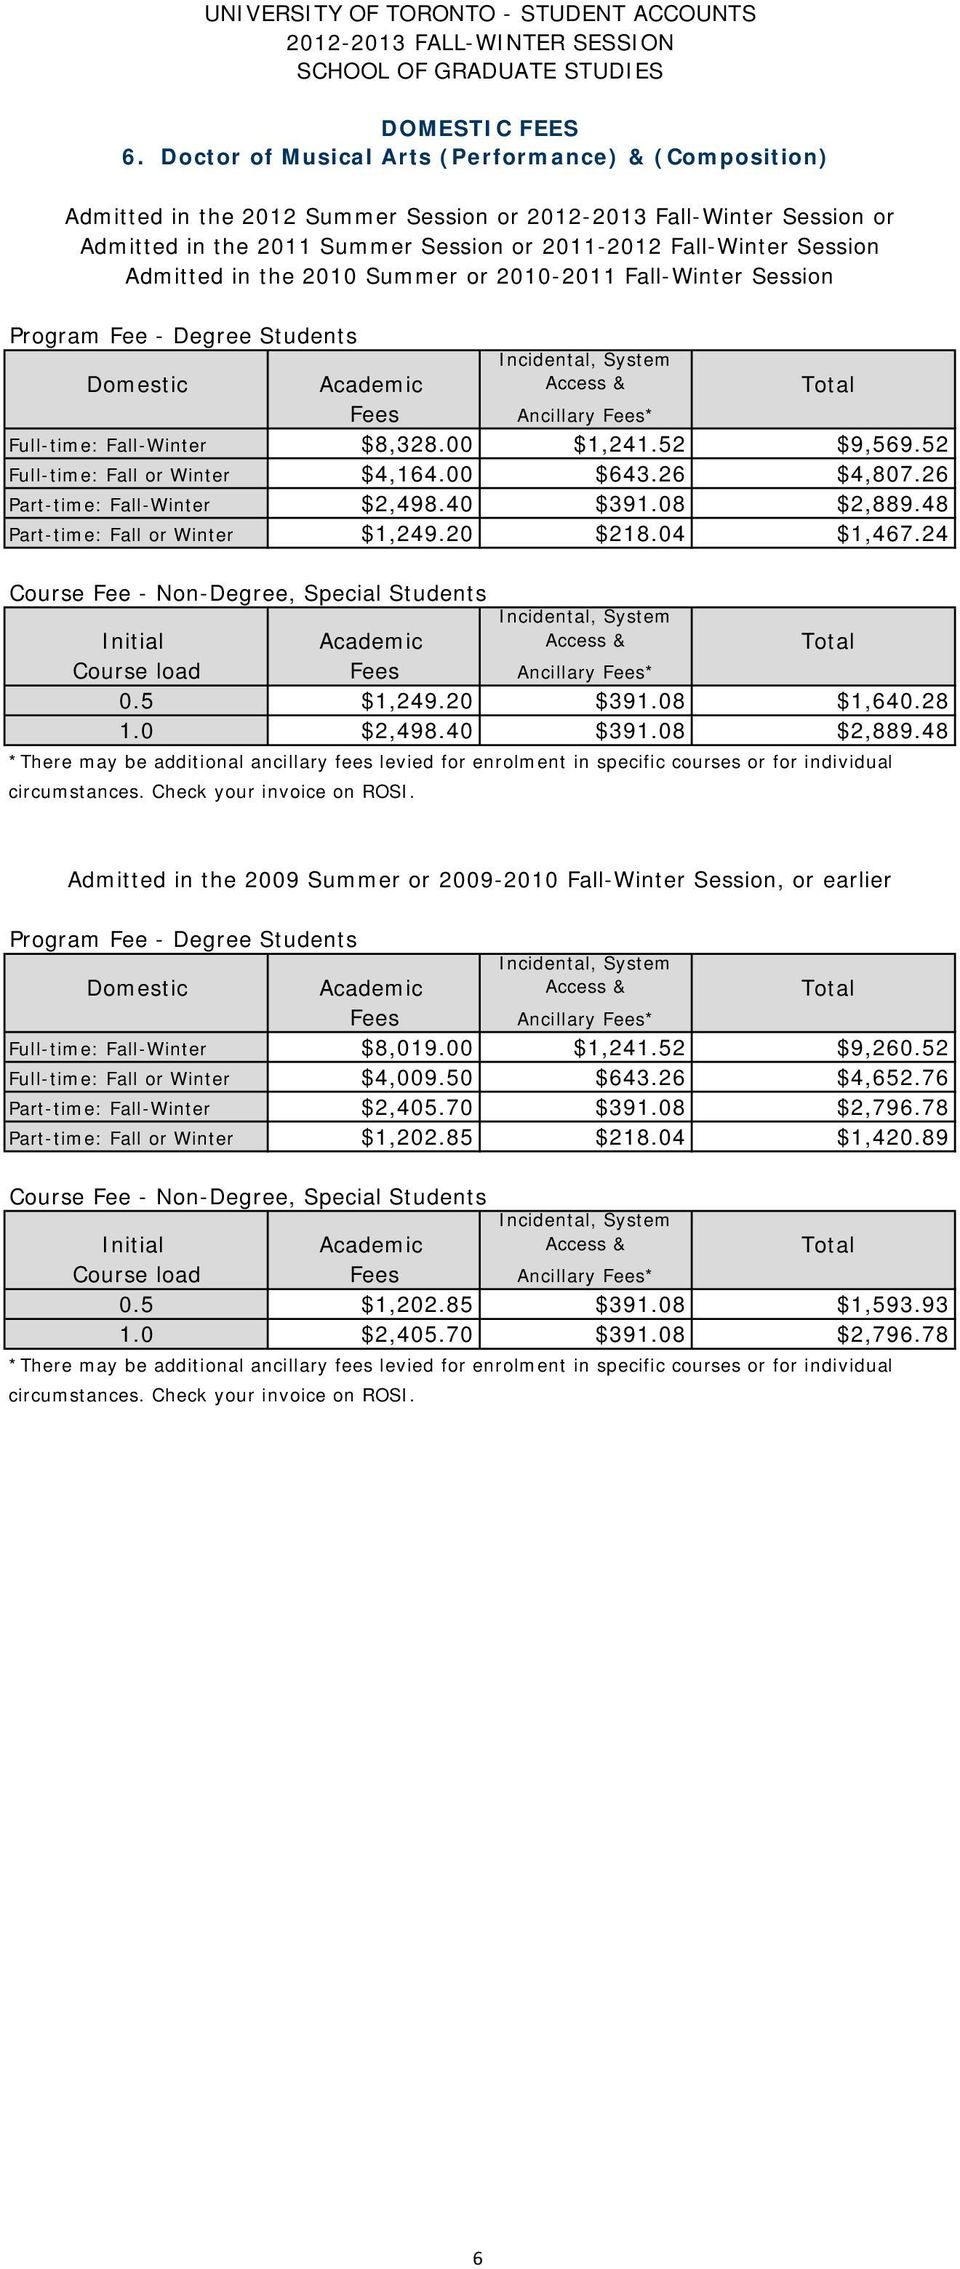 24 Course load 0.5 $1,249.20 $391.08 $1,640.28 1.0 $2,498.40 $391.08 $2,889.48 Admitted in the 2009 Summer or 2009-2010 Fall-Winter Session, or earlier Full-time: Fall-Winter $8,019.00 $1,241.